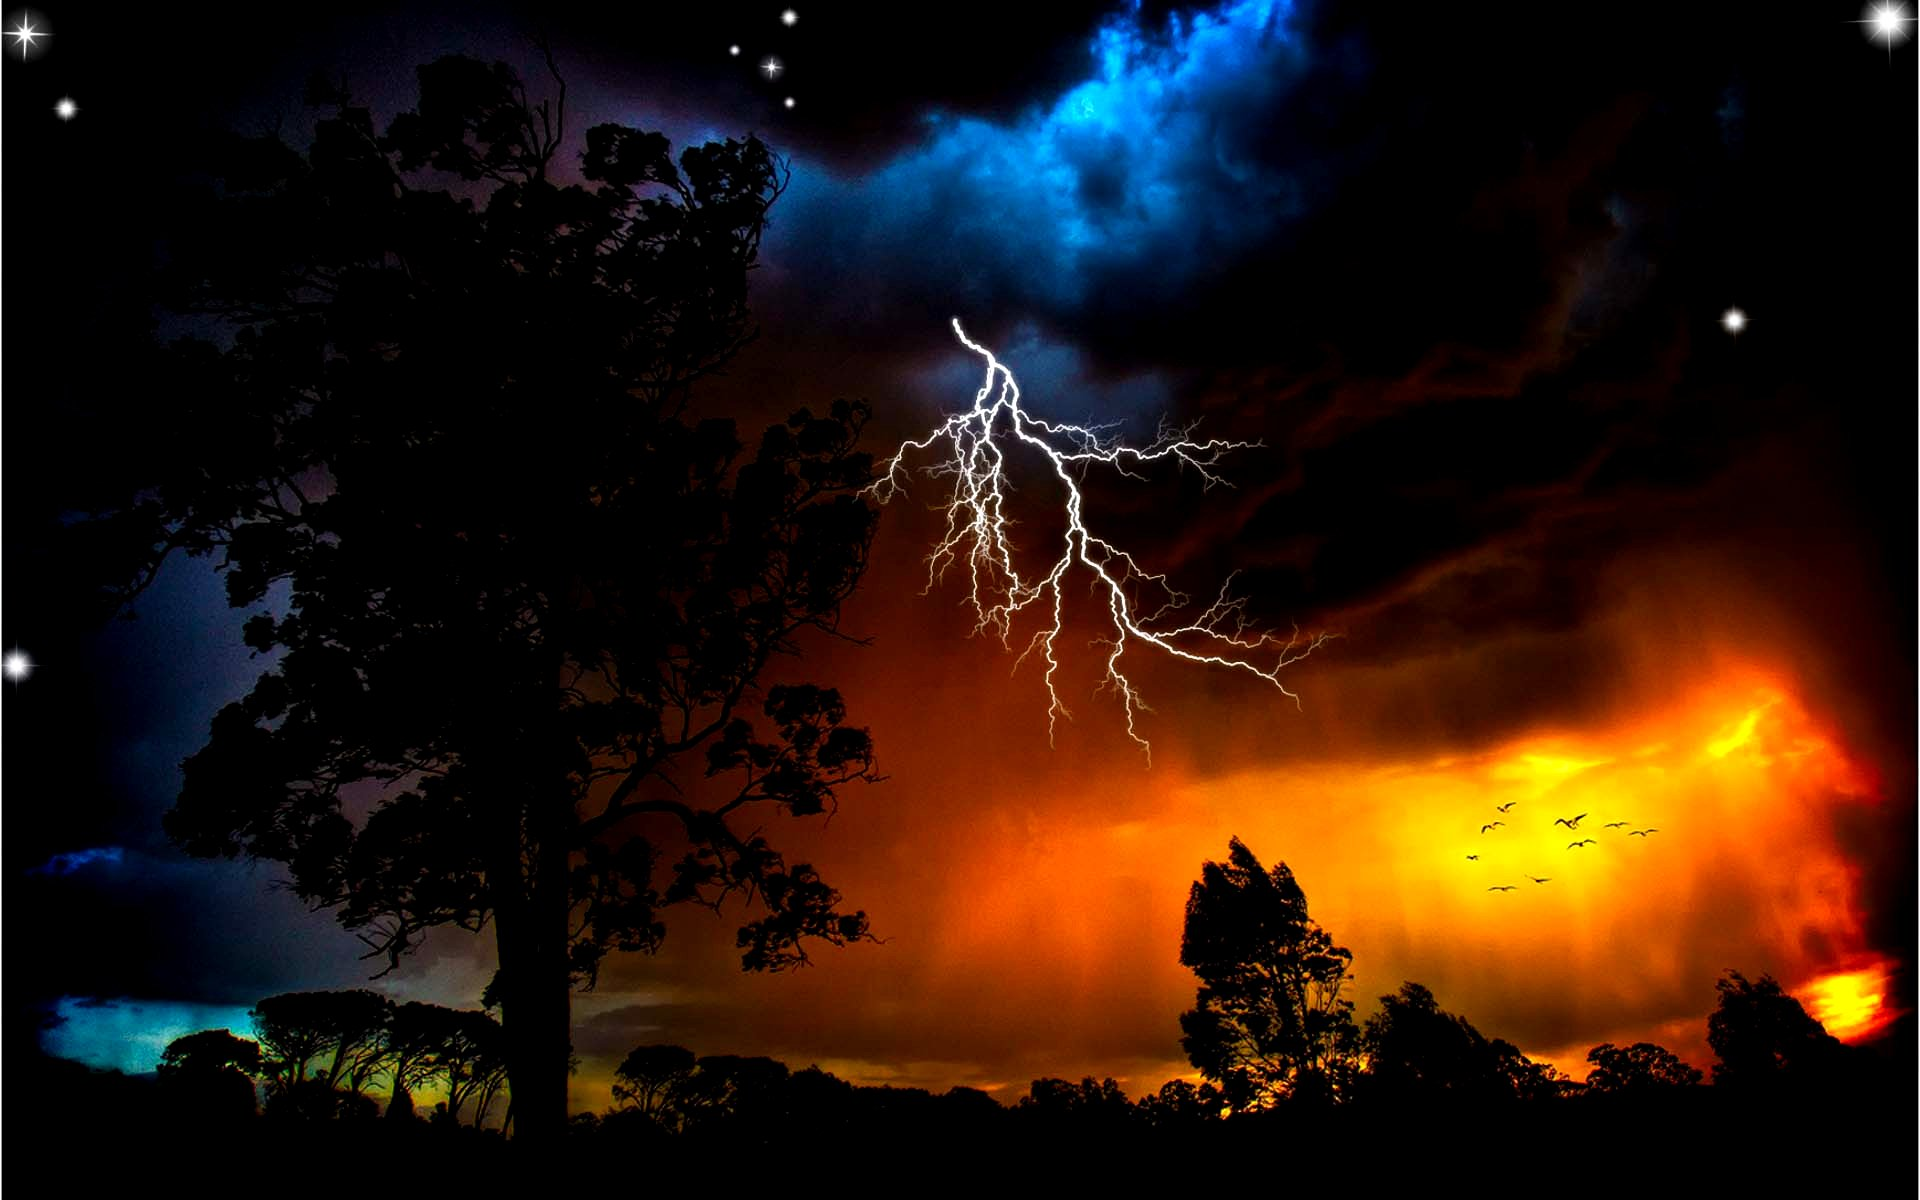 Thunder Fire HD Pictures, Thunder Storm Wallpapers - Wallpapers